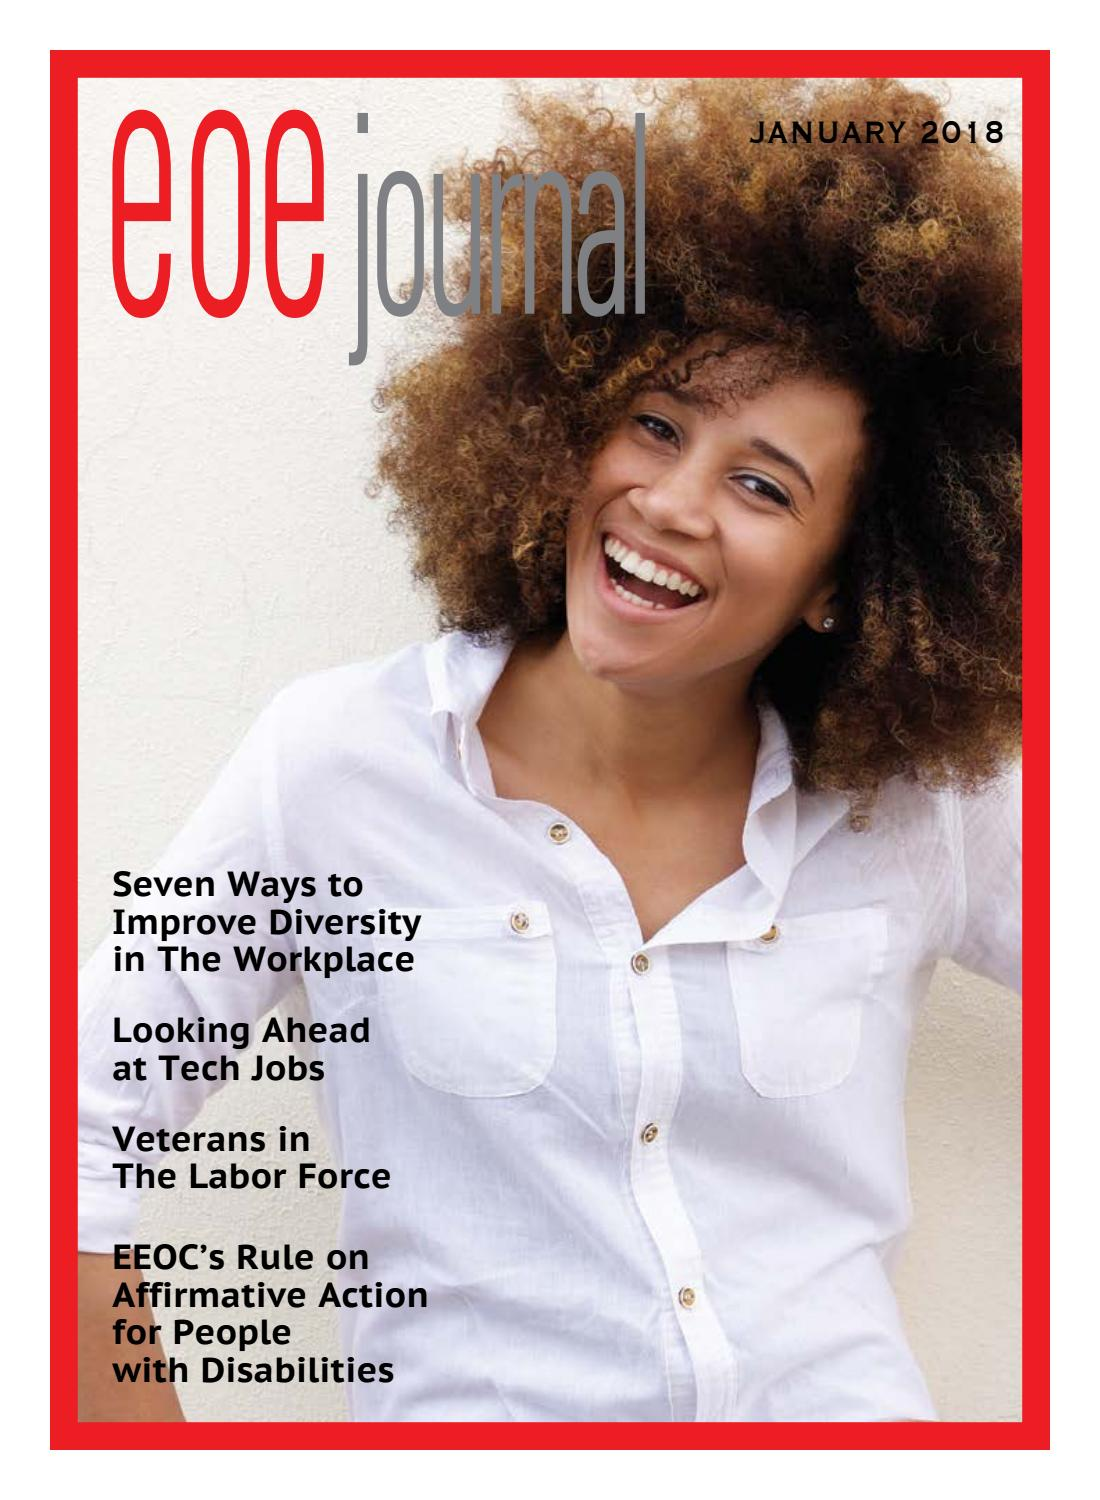 EOEJOURNAL 2018 JANUARY by EOE JOURNAL - issuu